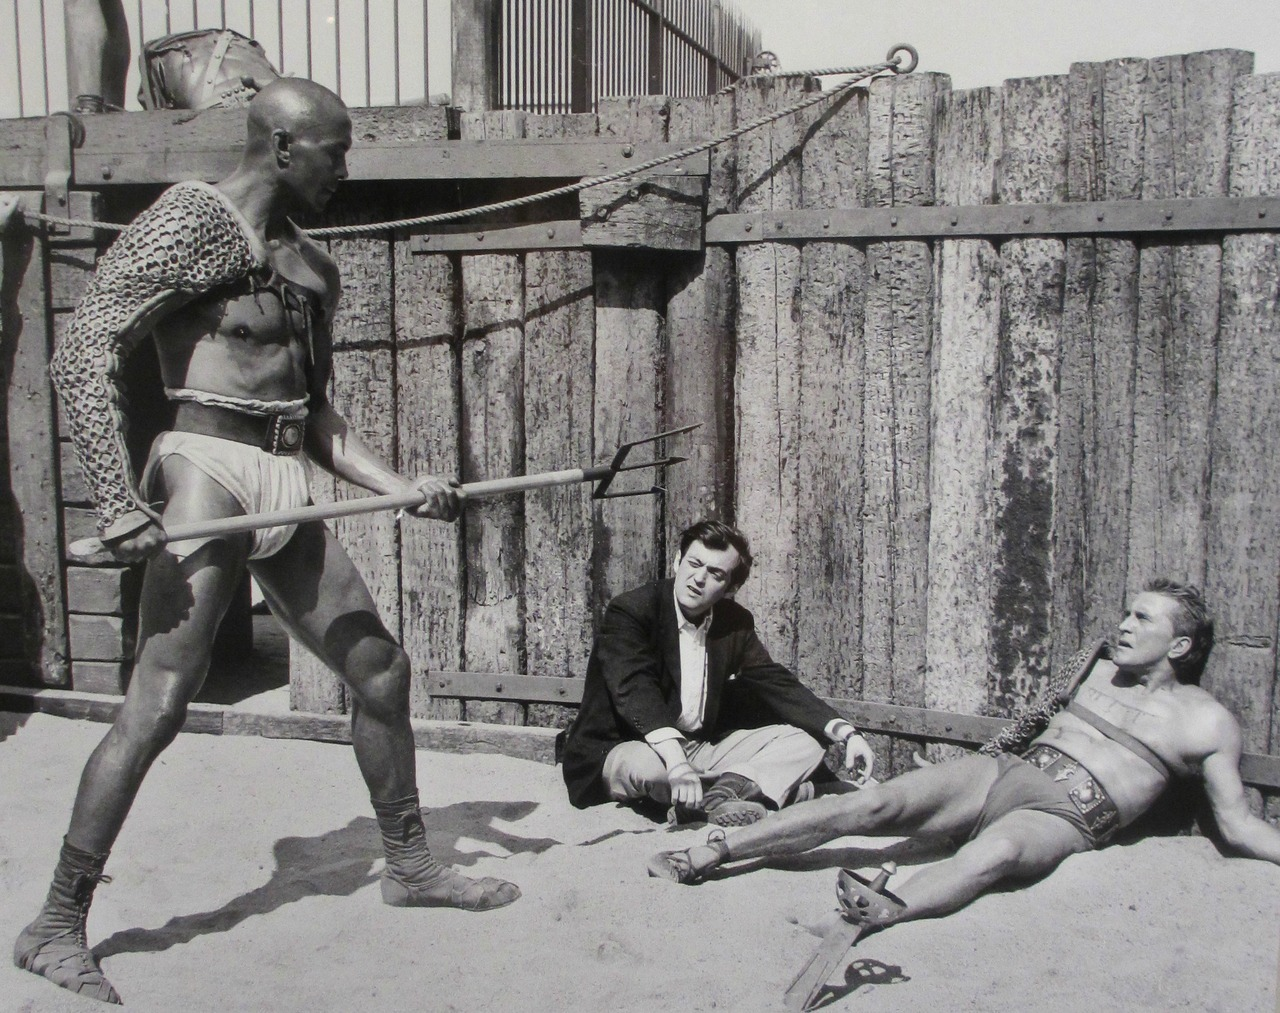 Rare photo of Kubrick directing Woody Strode and Kirk Douglas in the gladiator ring for Spartacus.